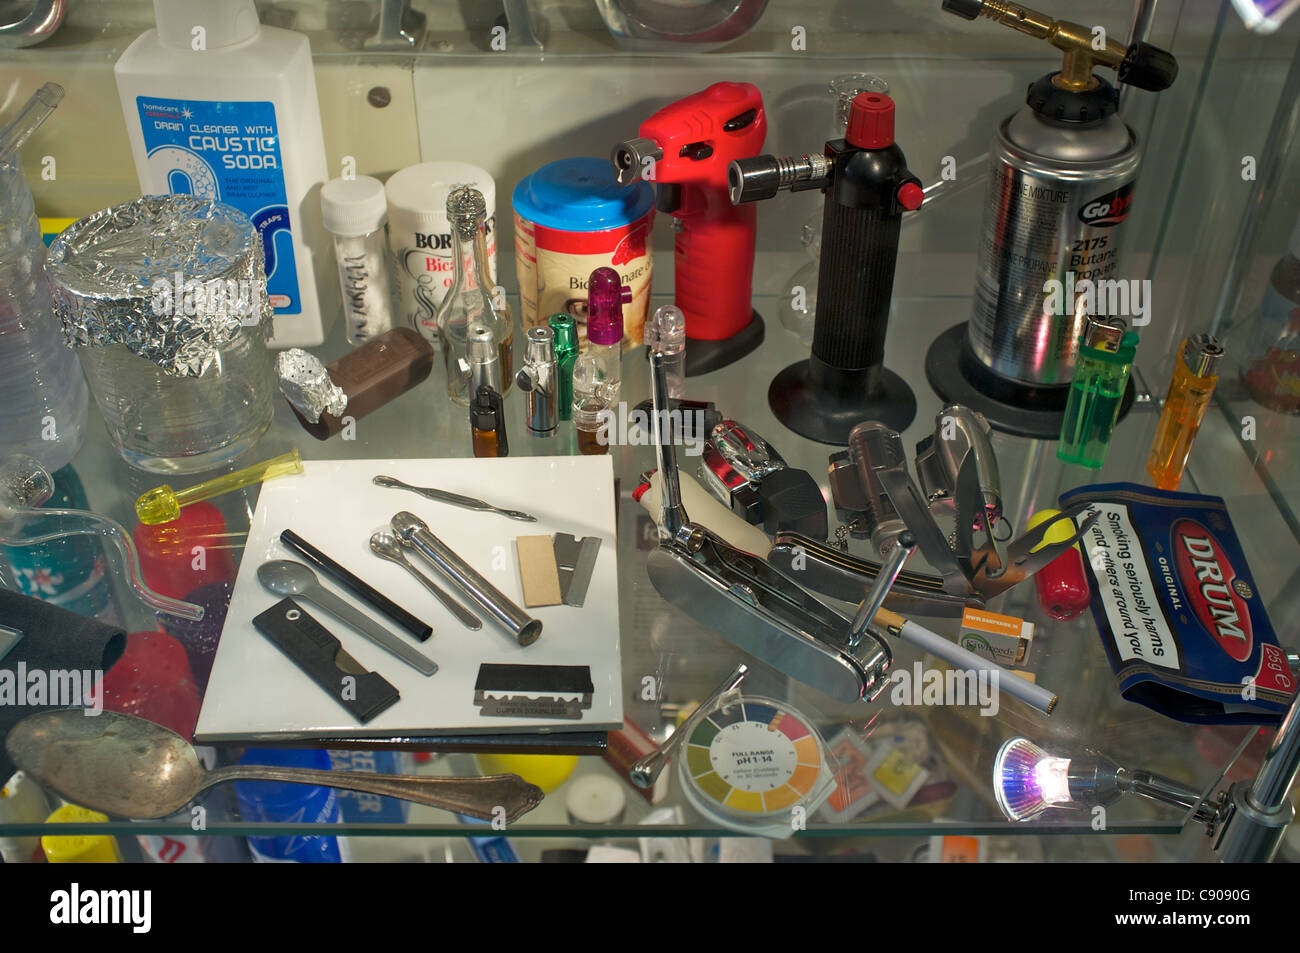 Illicit drugs paraphernalia in glass cabinet at research lab in London. - Stock Image